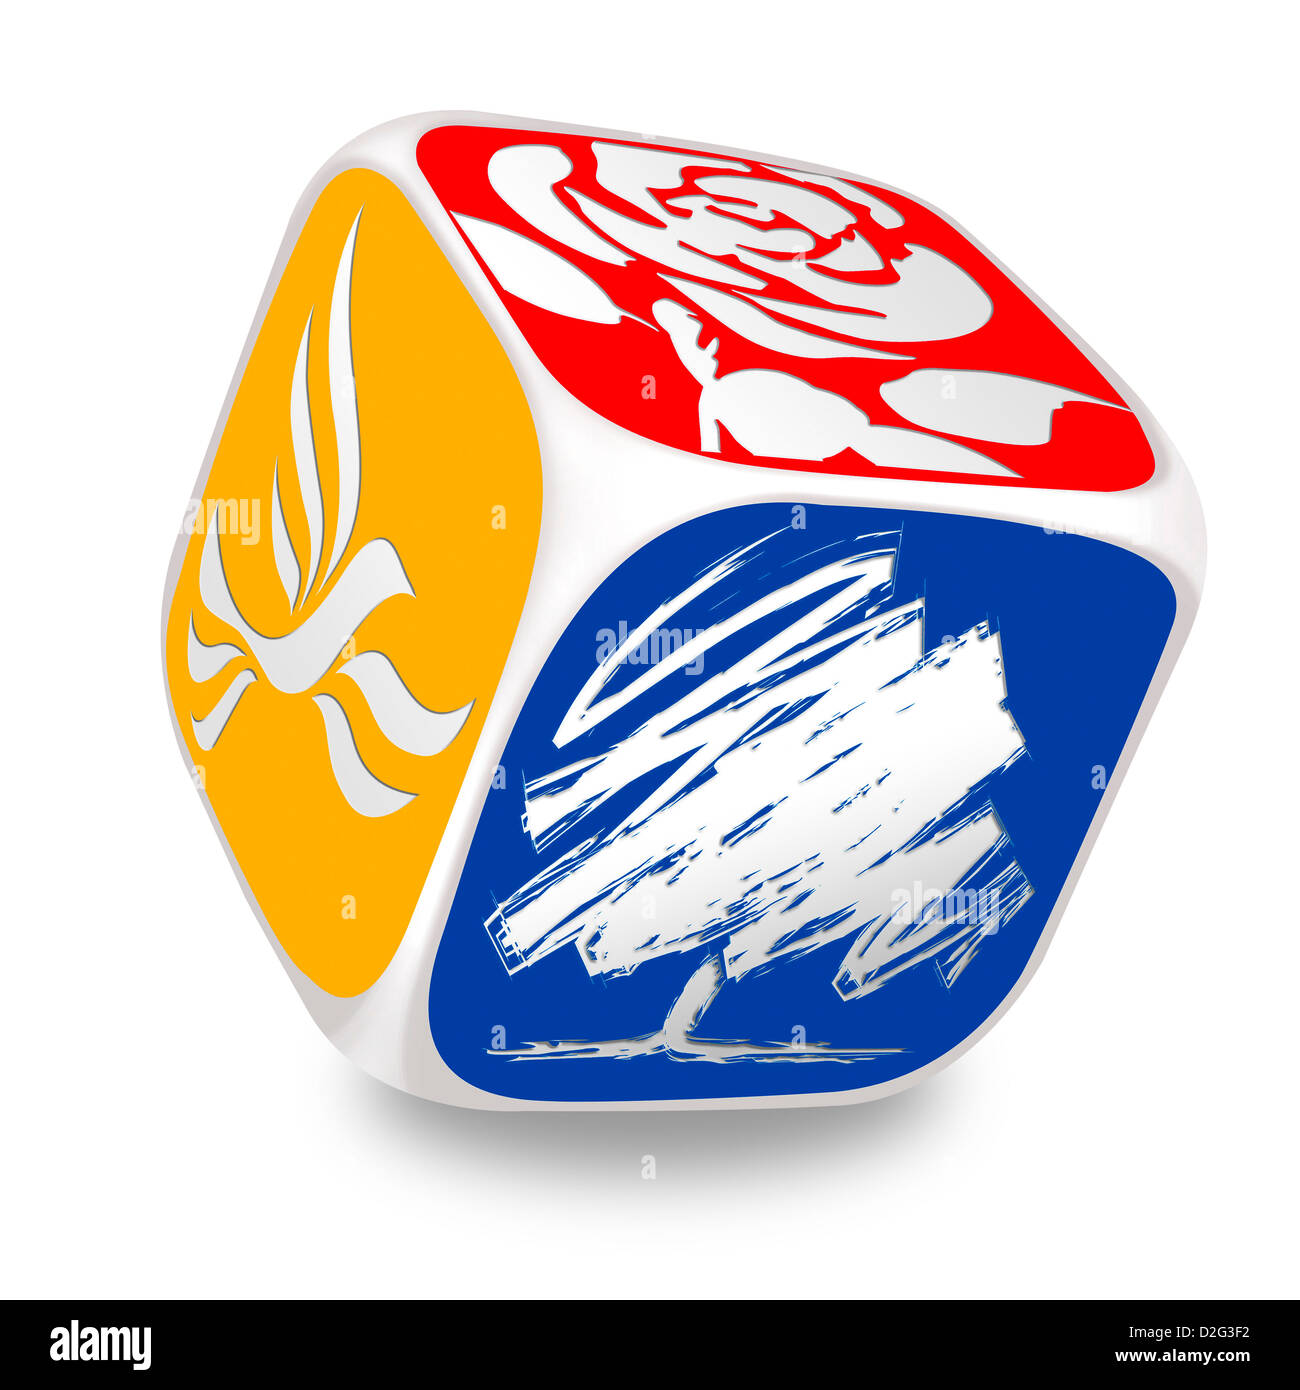 Dice with the symbols of the main UK political parties on each side. Labour, Conservative & Liberal Democrats - Stock Image